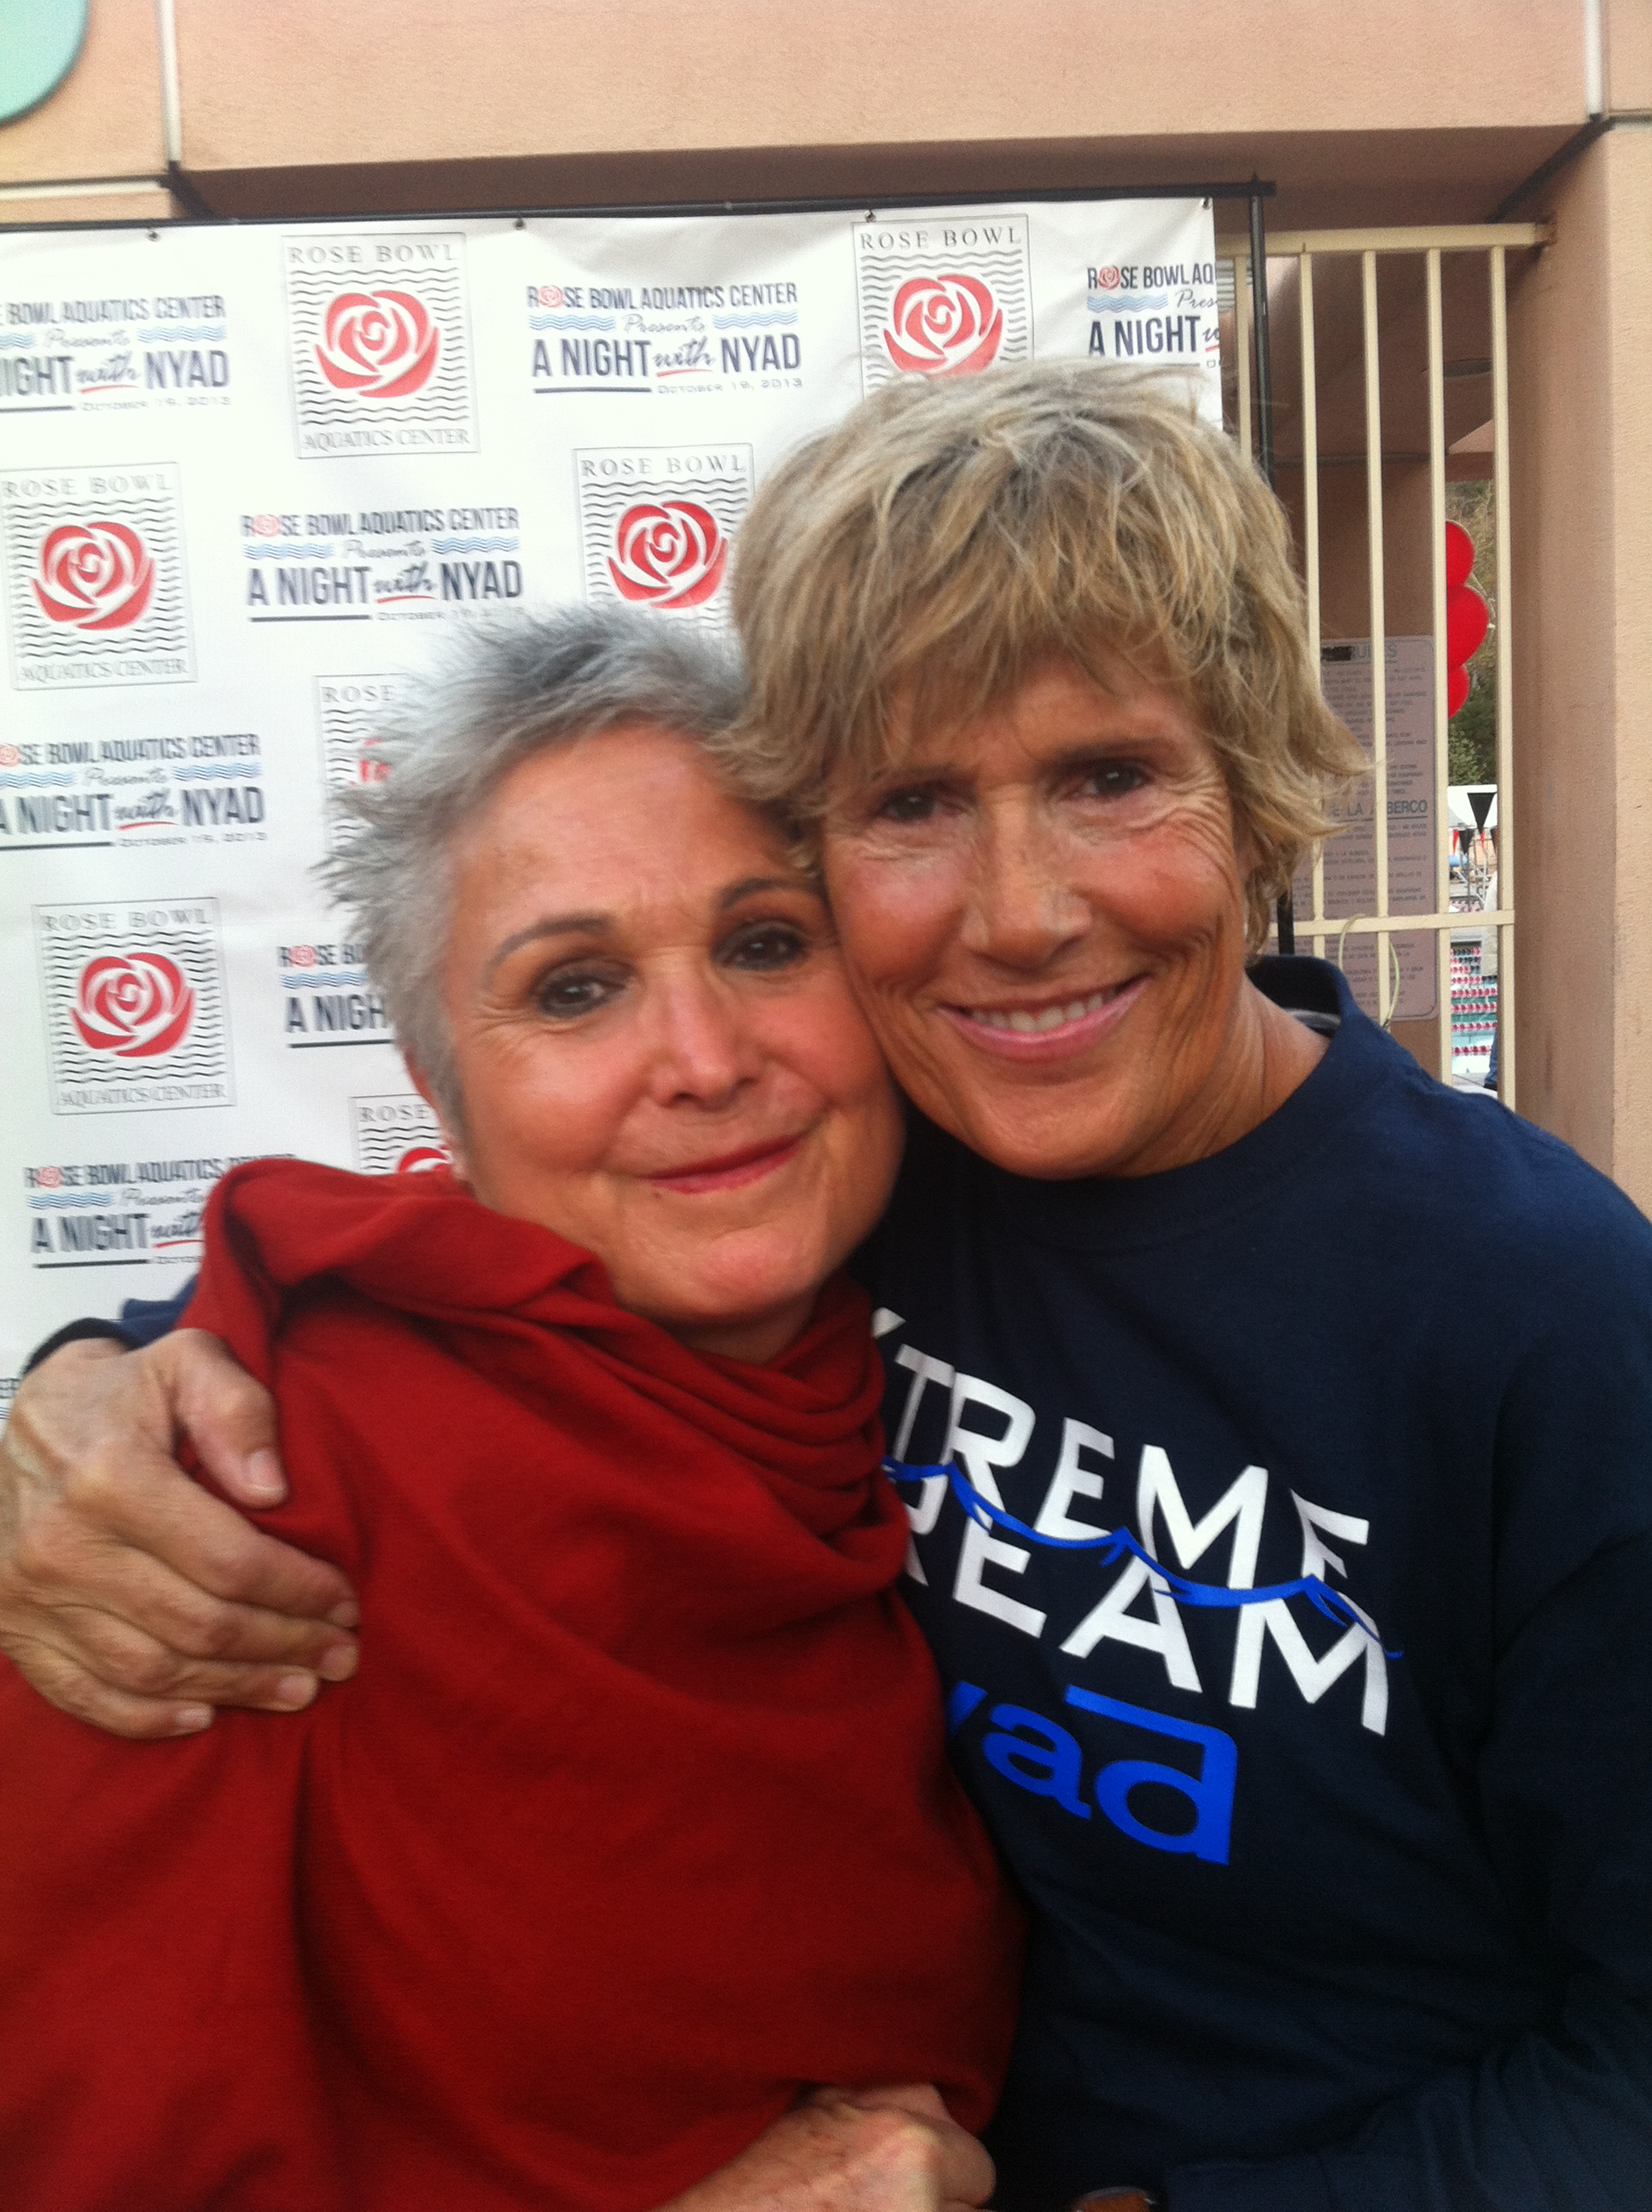 So honored to have met amazing 64 year old marathon swimmer Diana Nyad at the Rose Bowl Aquatics Center, where I swim every week! Her incredible feat of swimming from Cuba to the Florida keys is an accomplishment that proves once again that our bodies--against popular beliefs--are ready to do whatever our minds decide they are capable of doing. Such an inspiration for women my age and beyond!!!